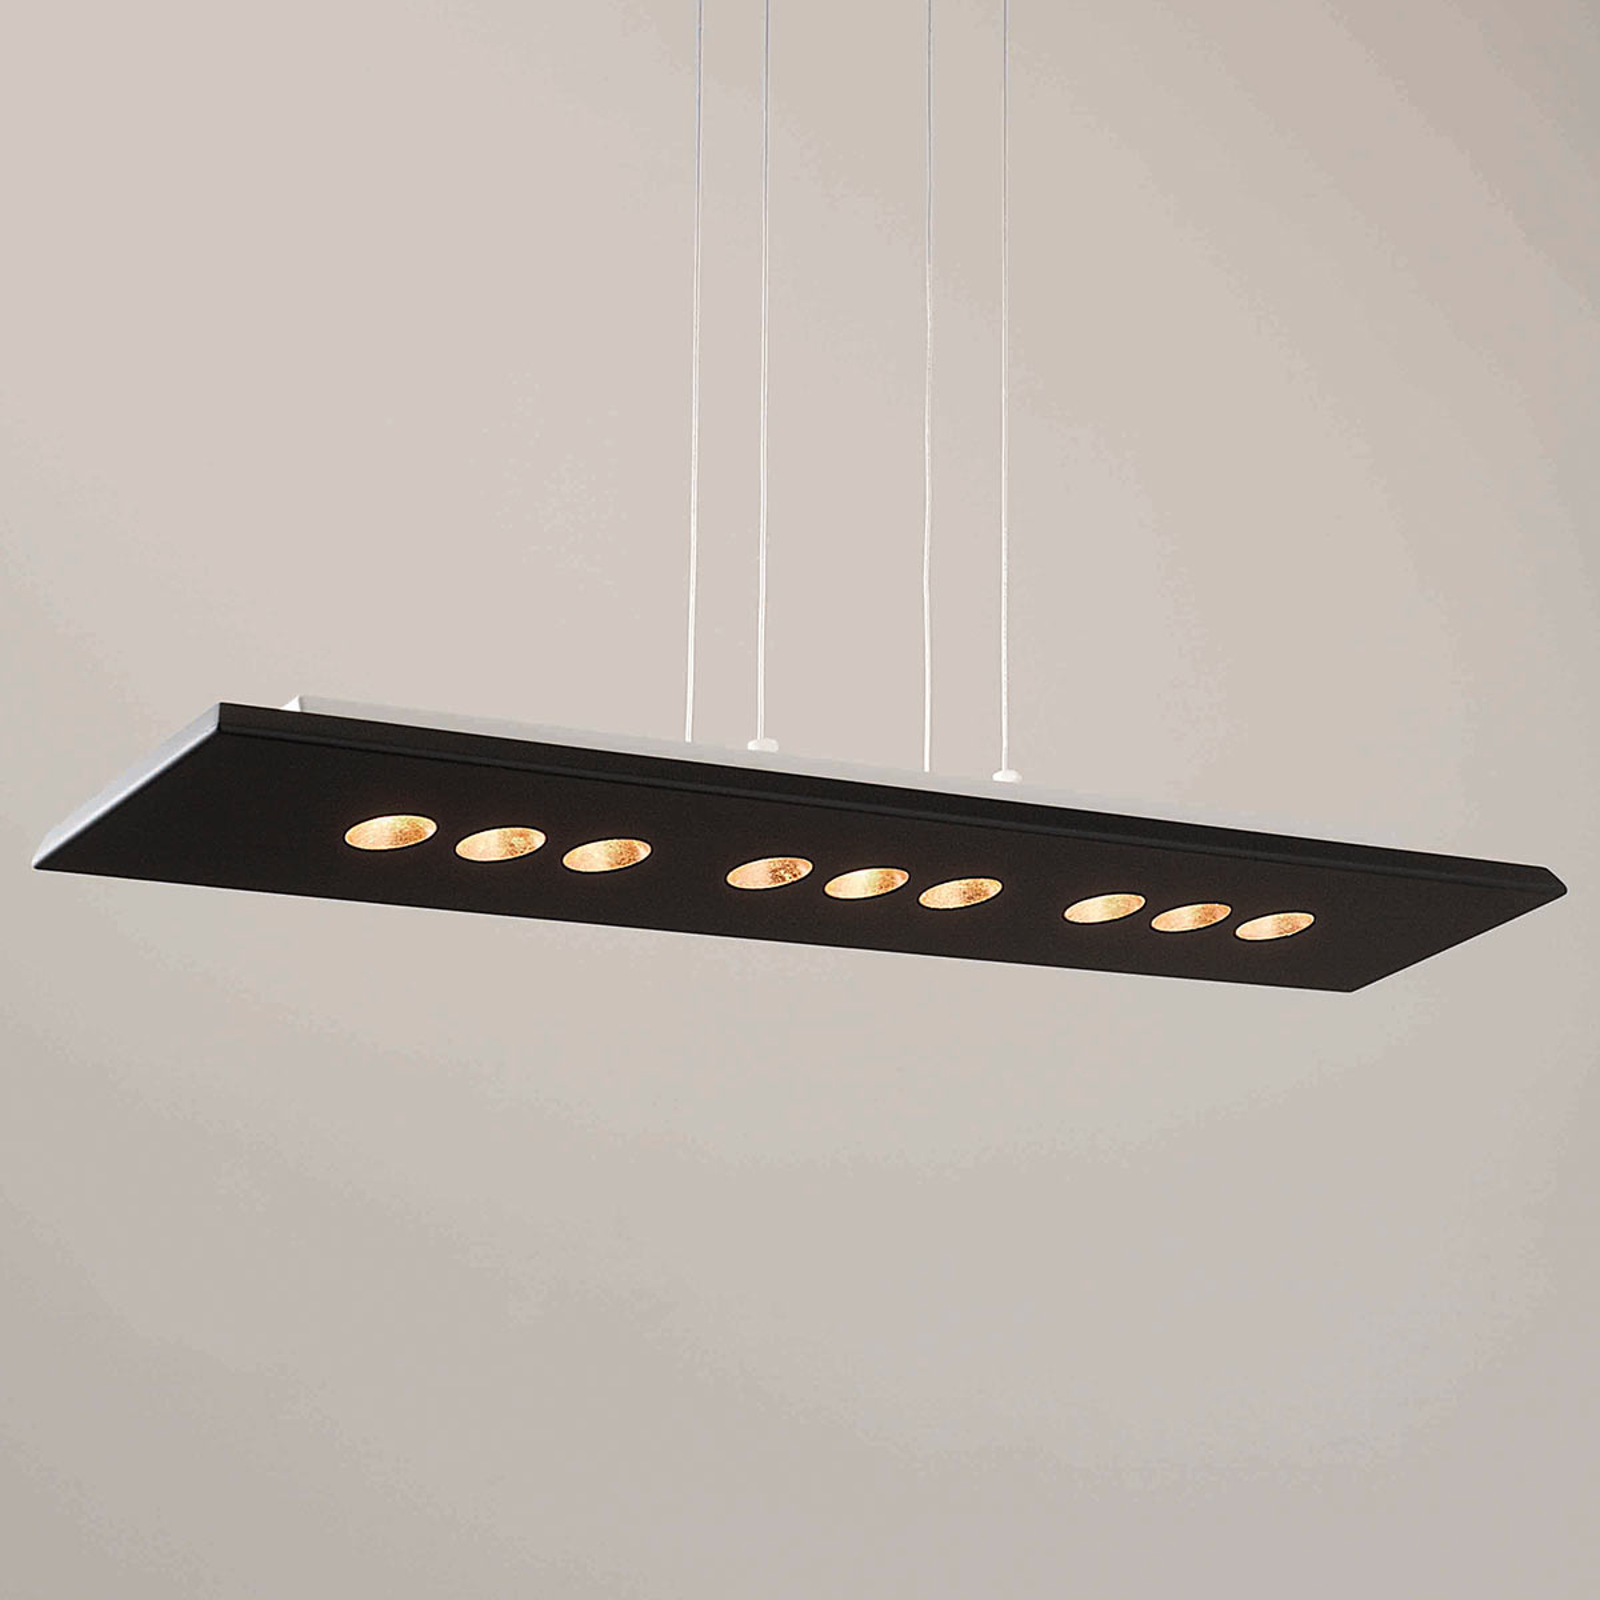 ICONE Confort LED hanglamp in zwart-goud